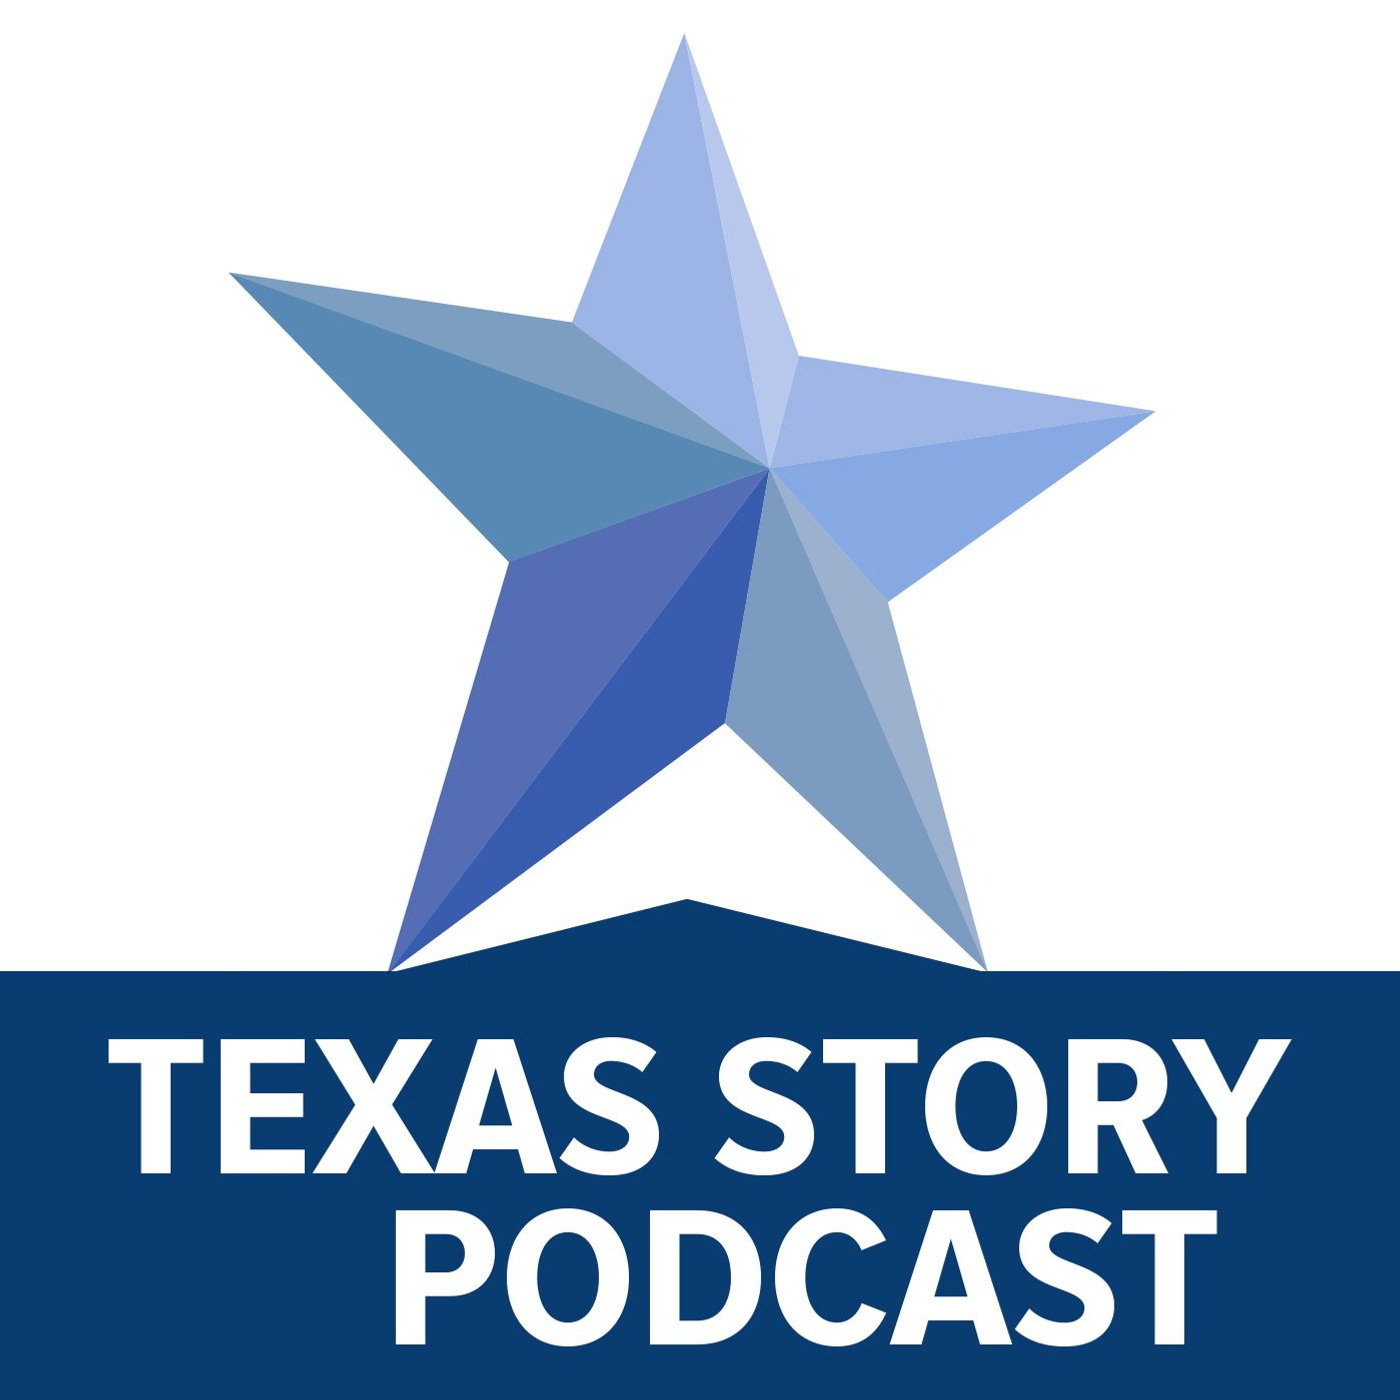 Episode 3 // Stevie Ray Vaughan: A Texas Story Podcast